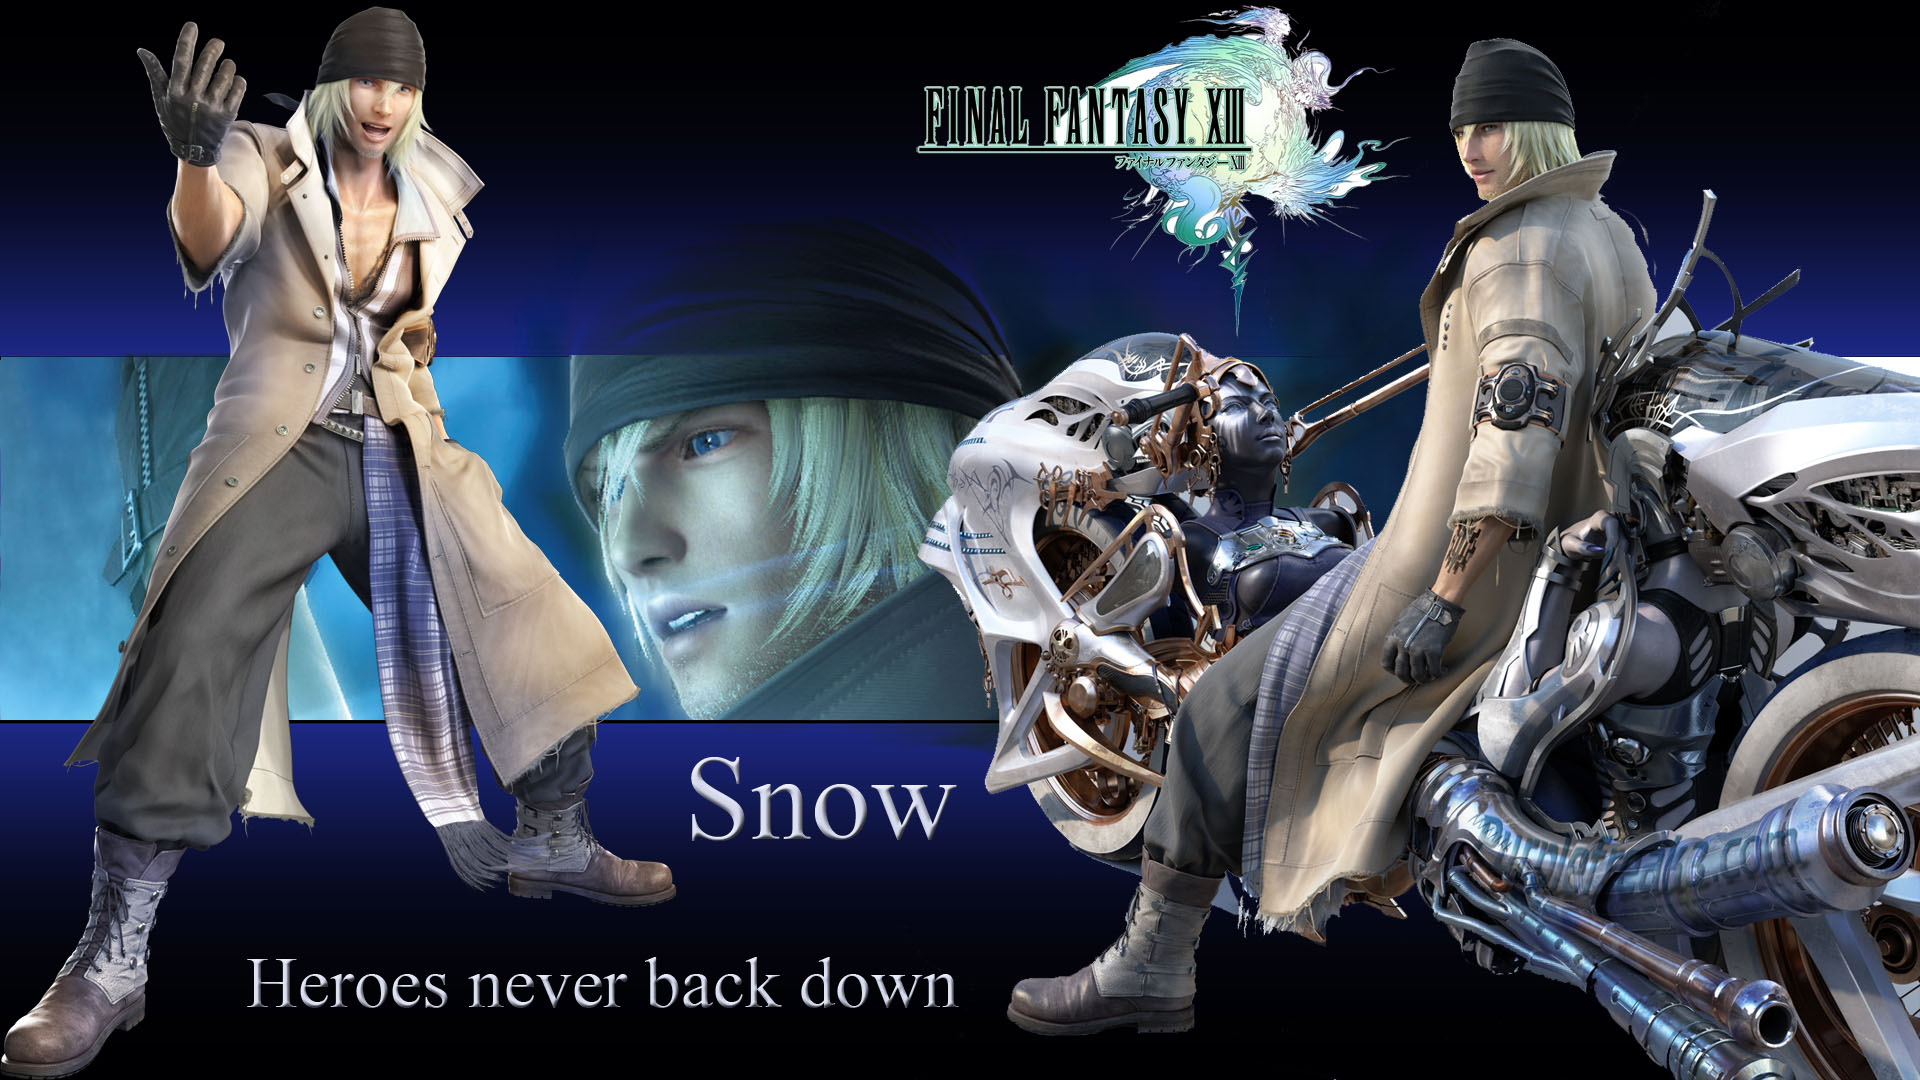 Final Fantasy XIII Snow HD Wallpaper